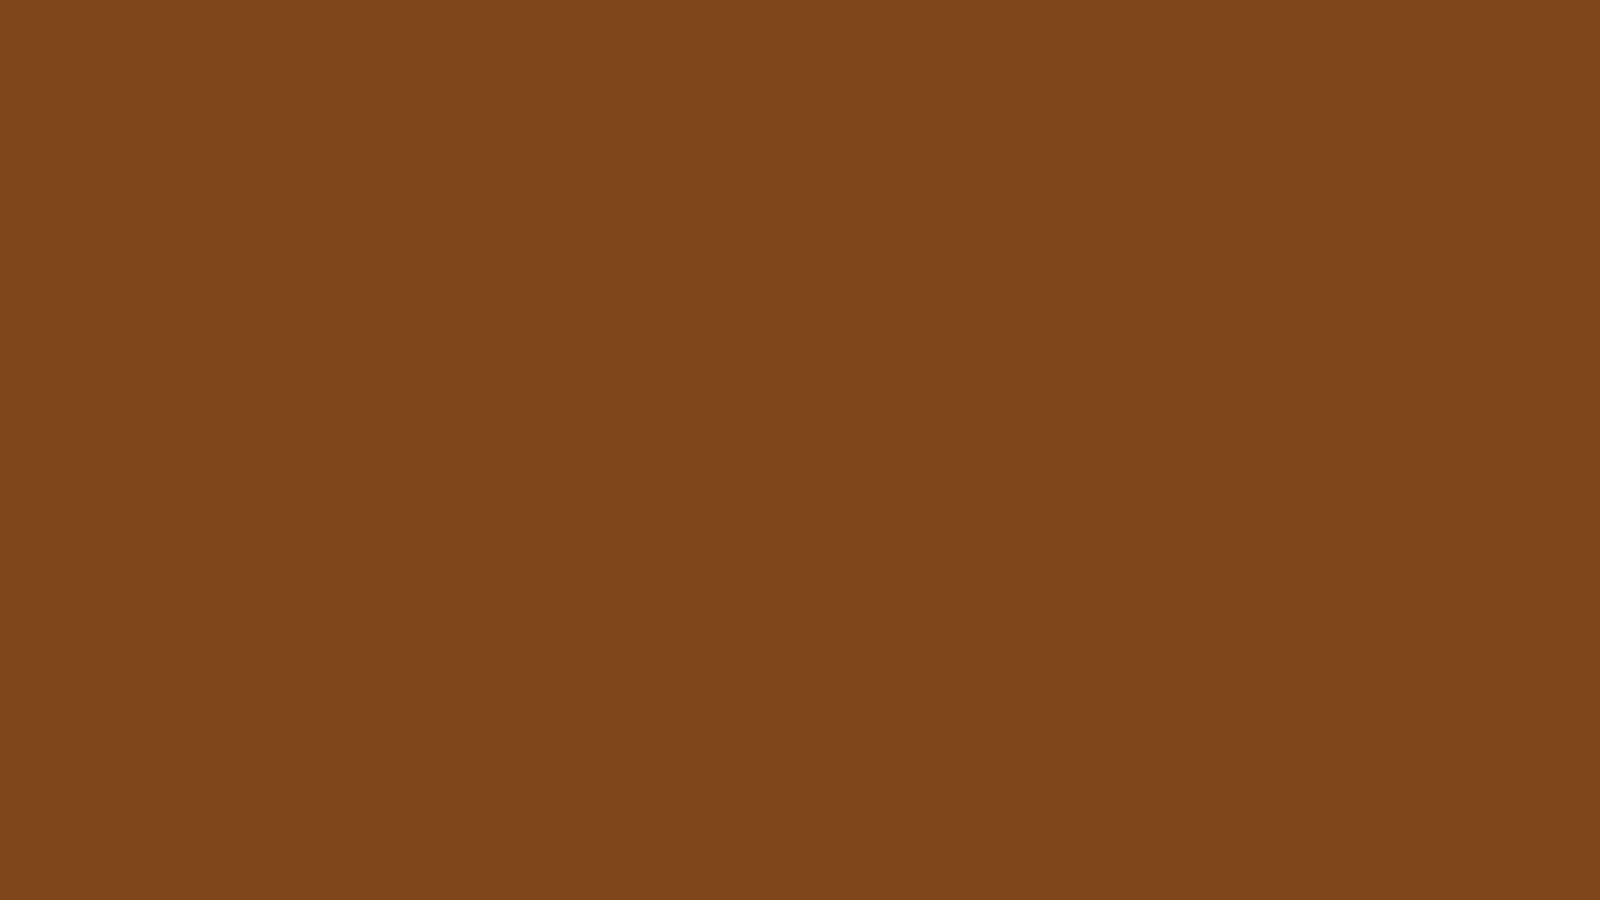 1600x900 Russet Solid Color Background